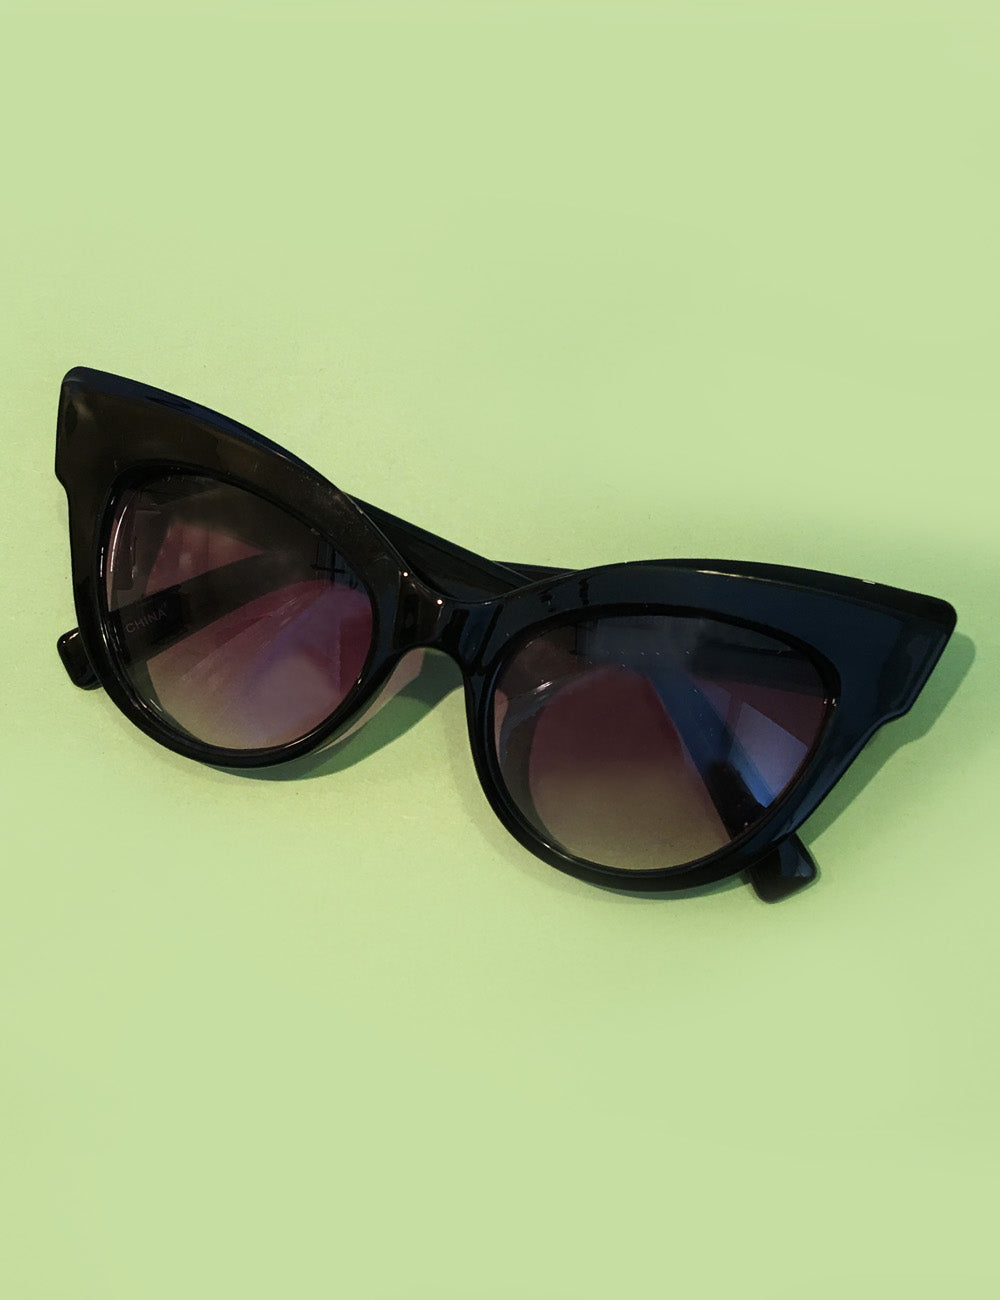 The Cat's Meow Solid Black Unique Retro Cat Eye Sunglasses